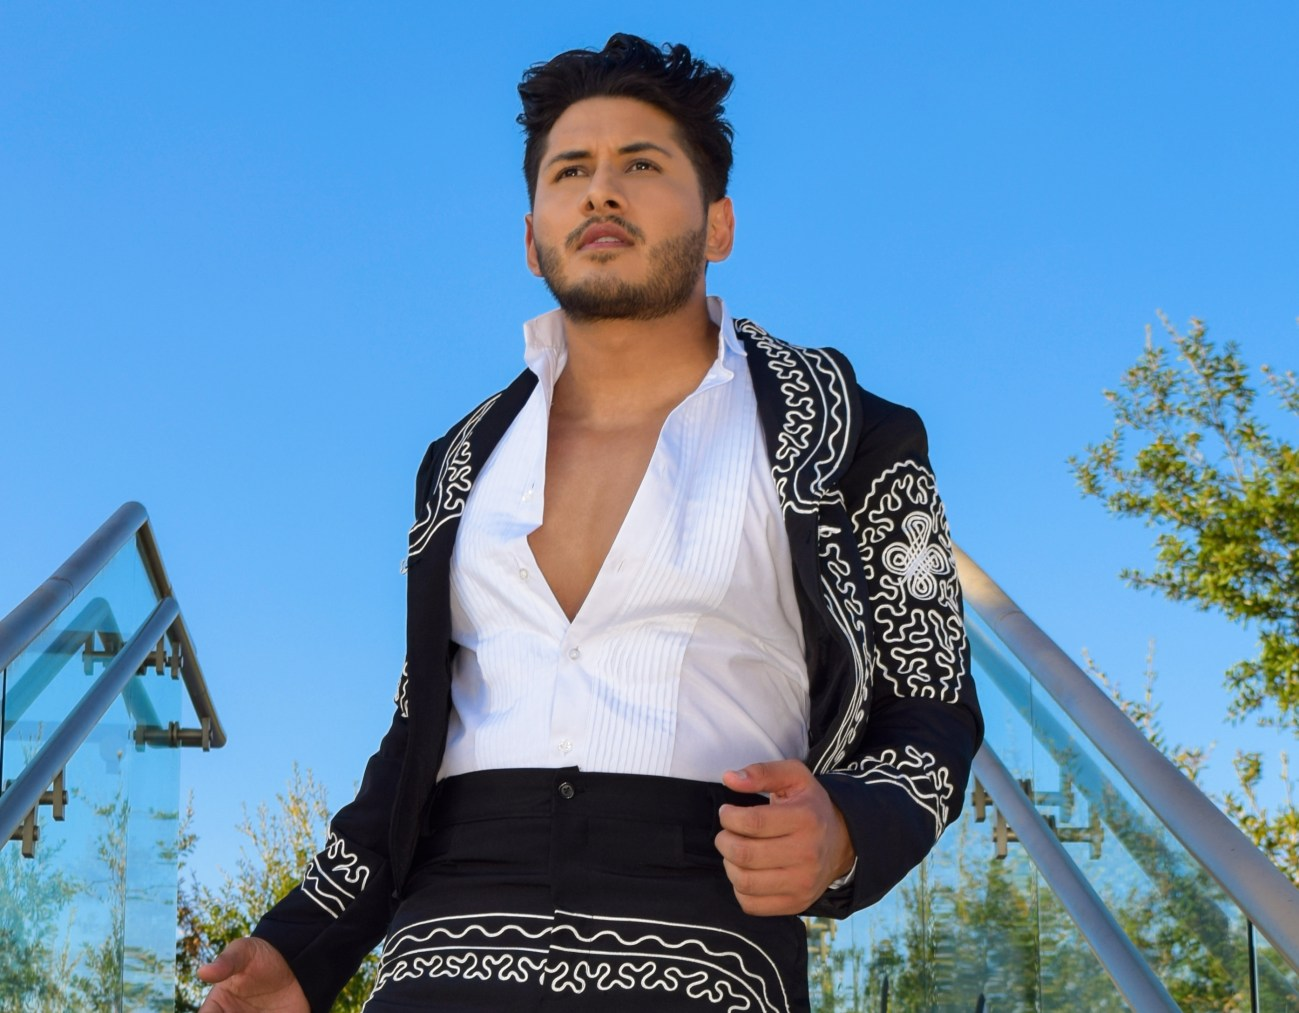 Leyo is a latin pop artist who lives in Los Angeles.